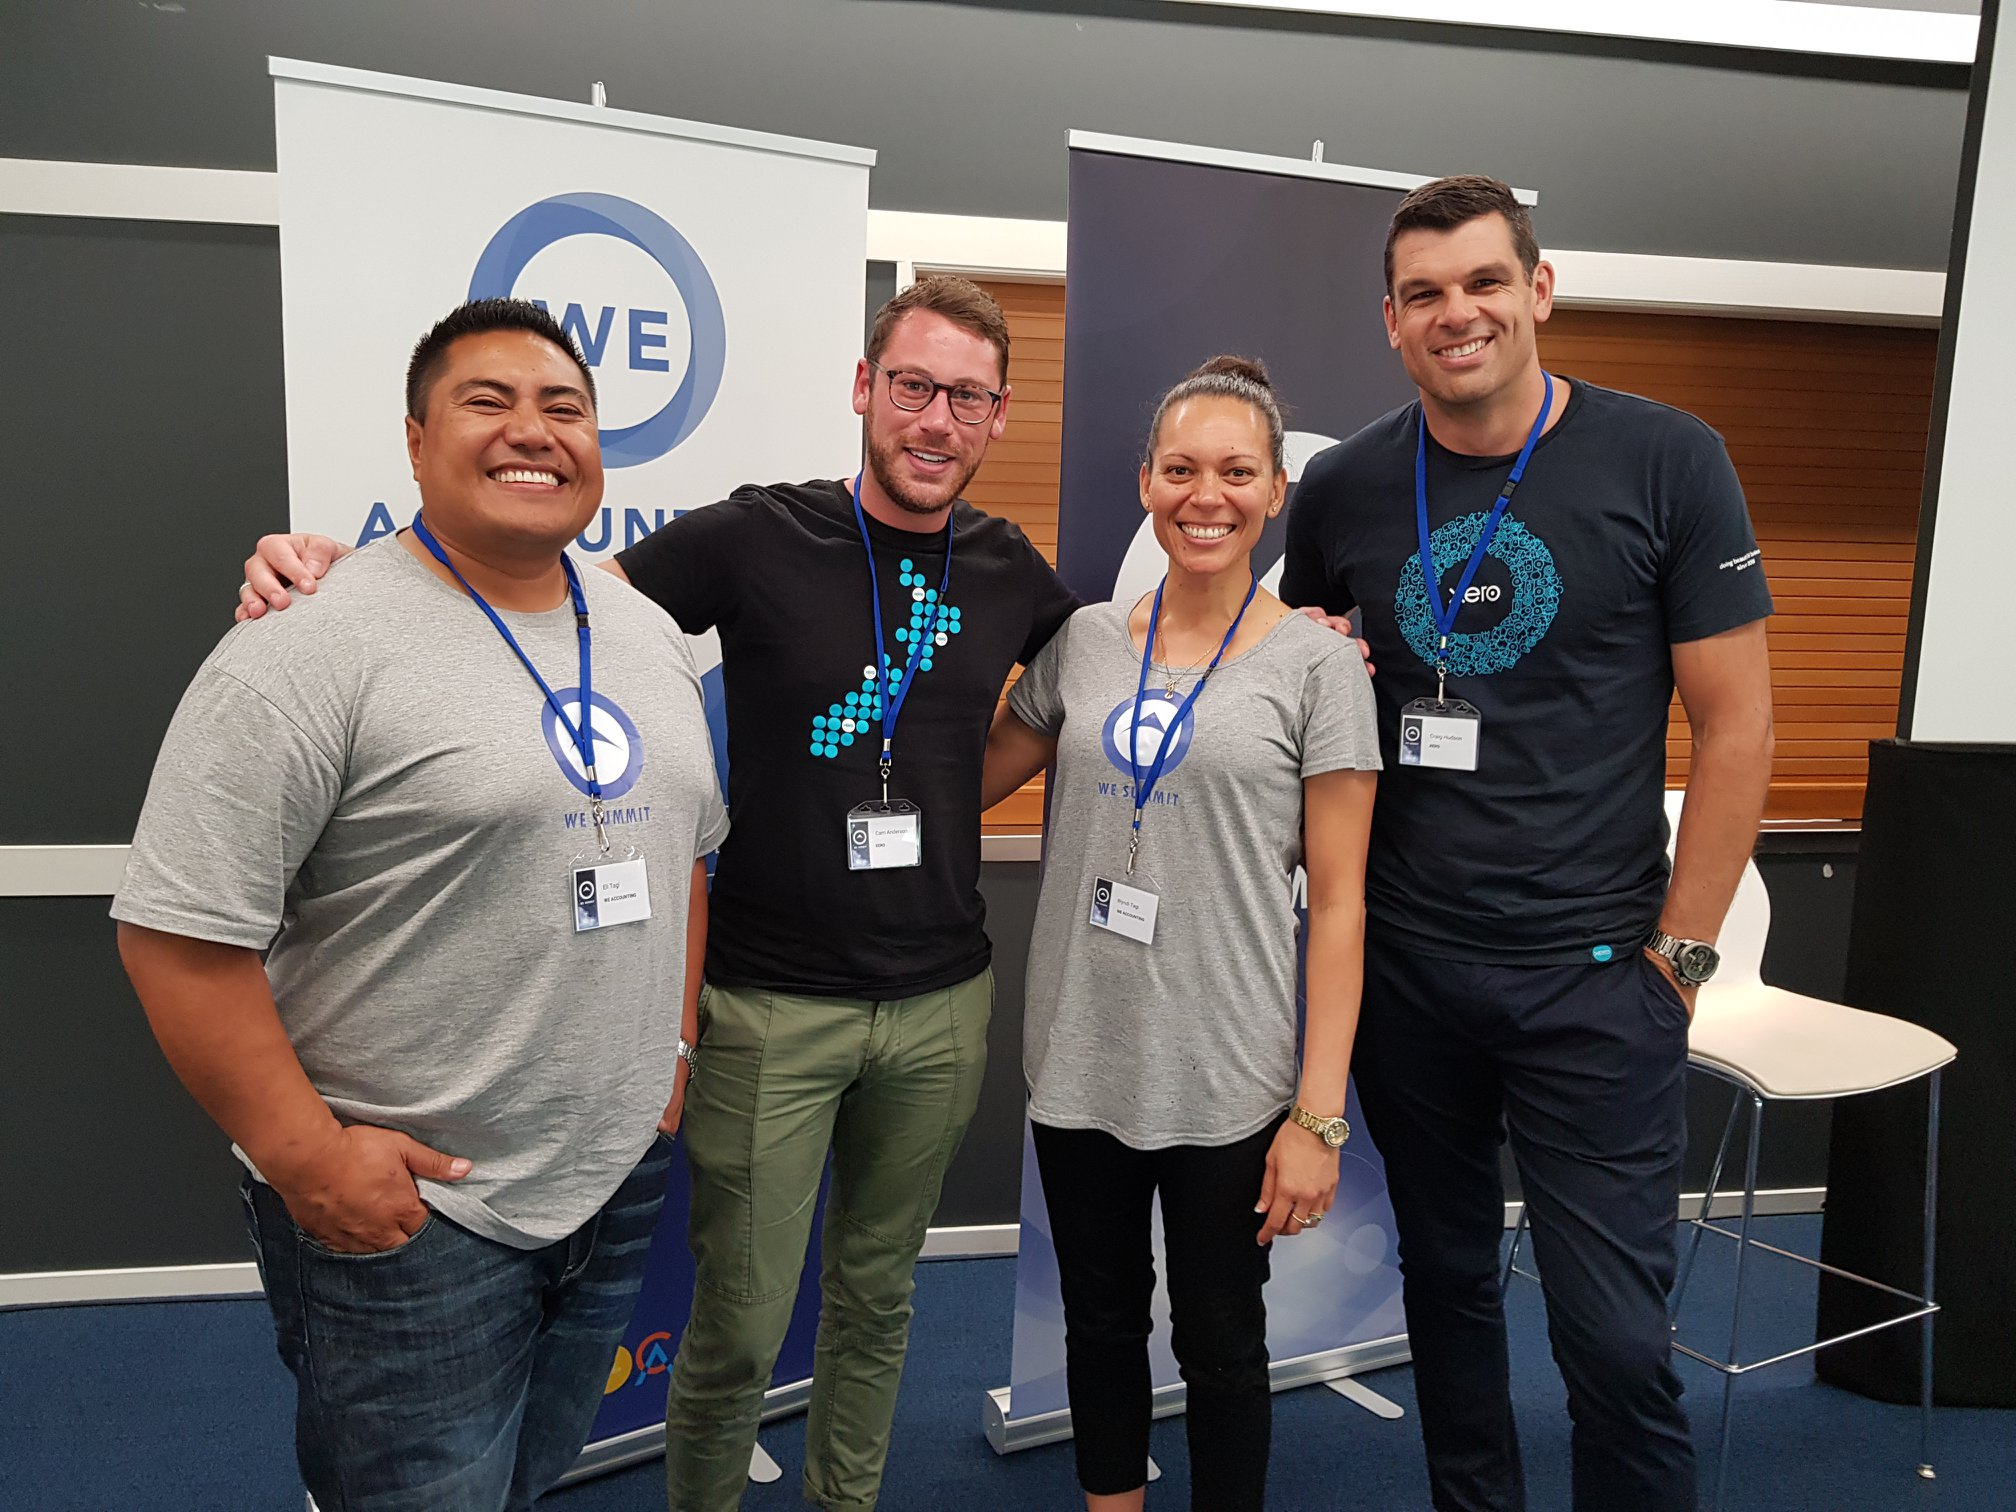 Wyndi Tagi, Eli, and the managing director of Xero, Craig Hudson